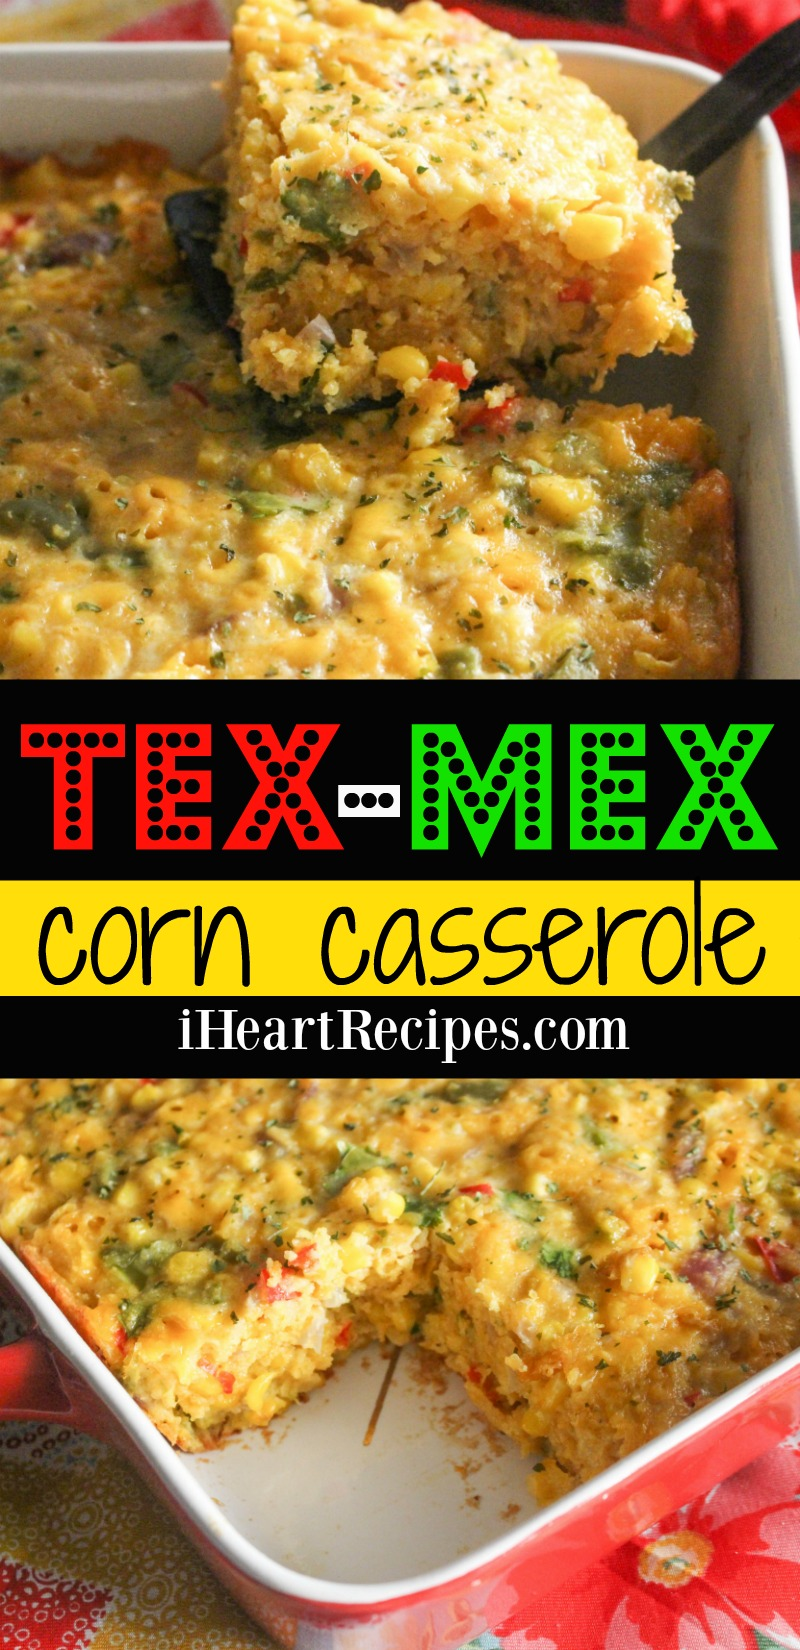 This delicious Tex Mex corn casserole is packed with flavor